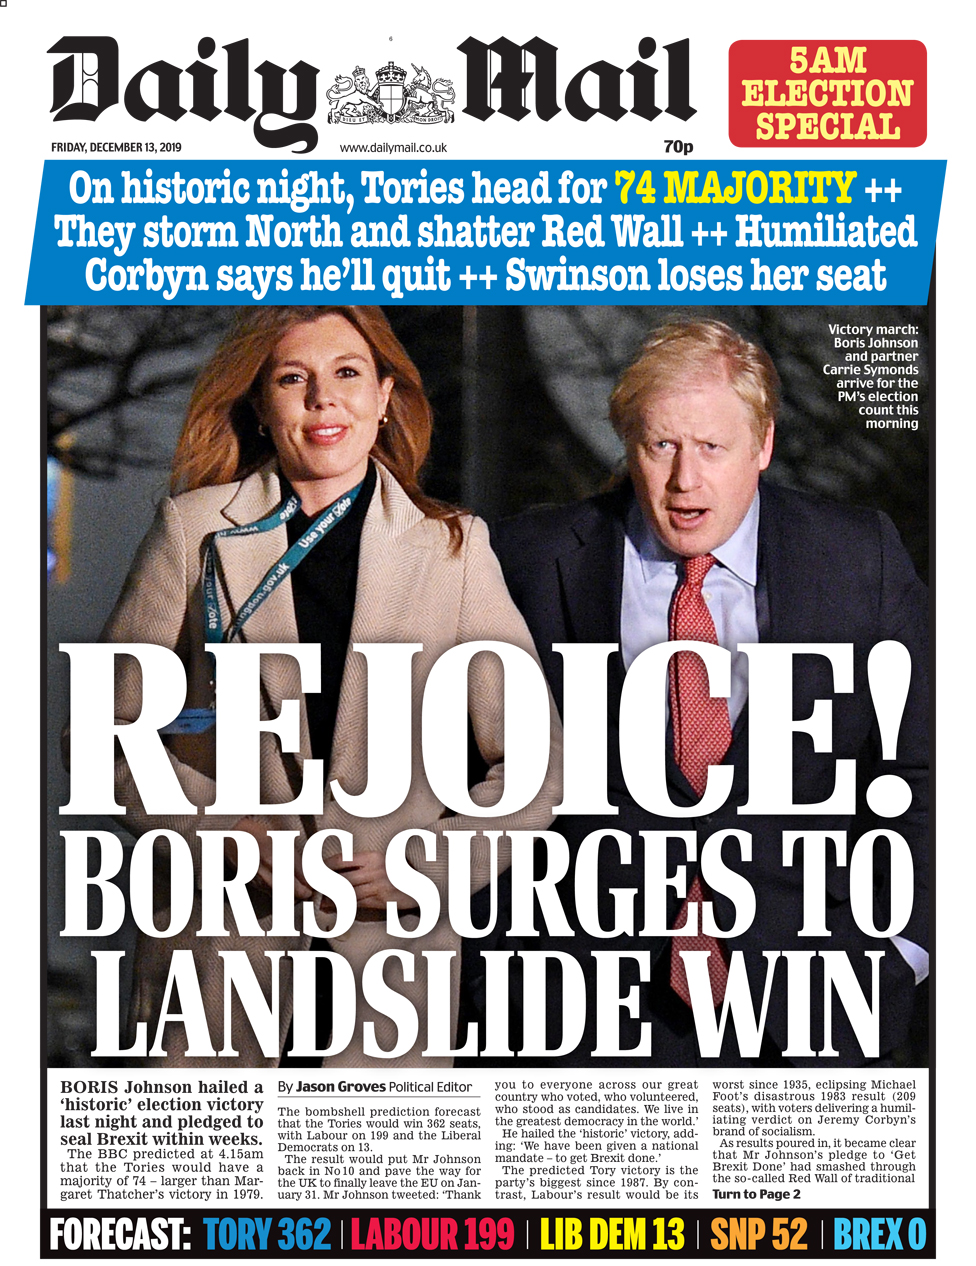 Friday's Daily Mail front page (late edition)